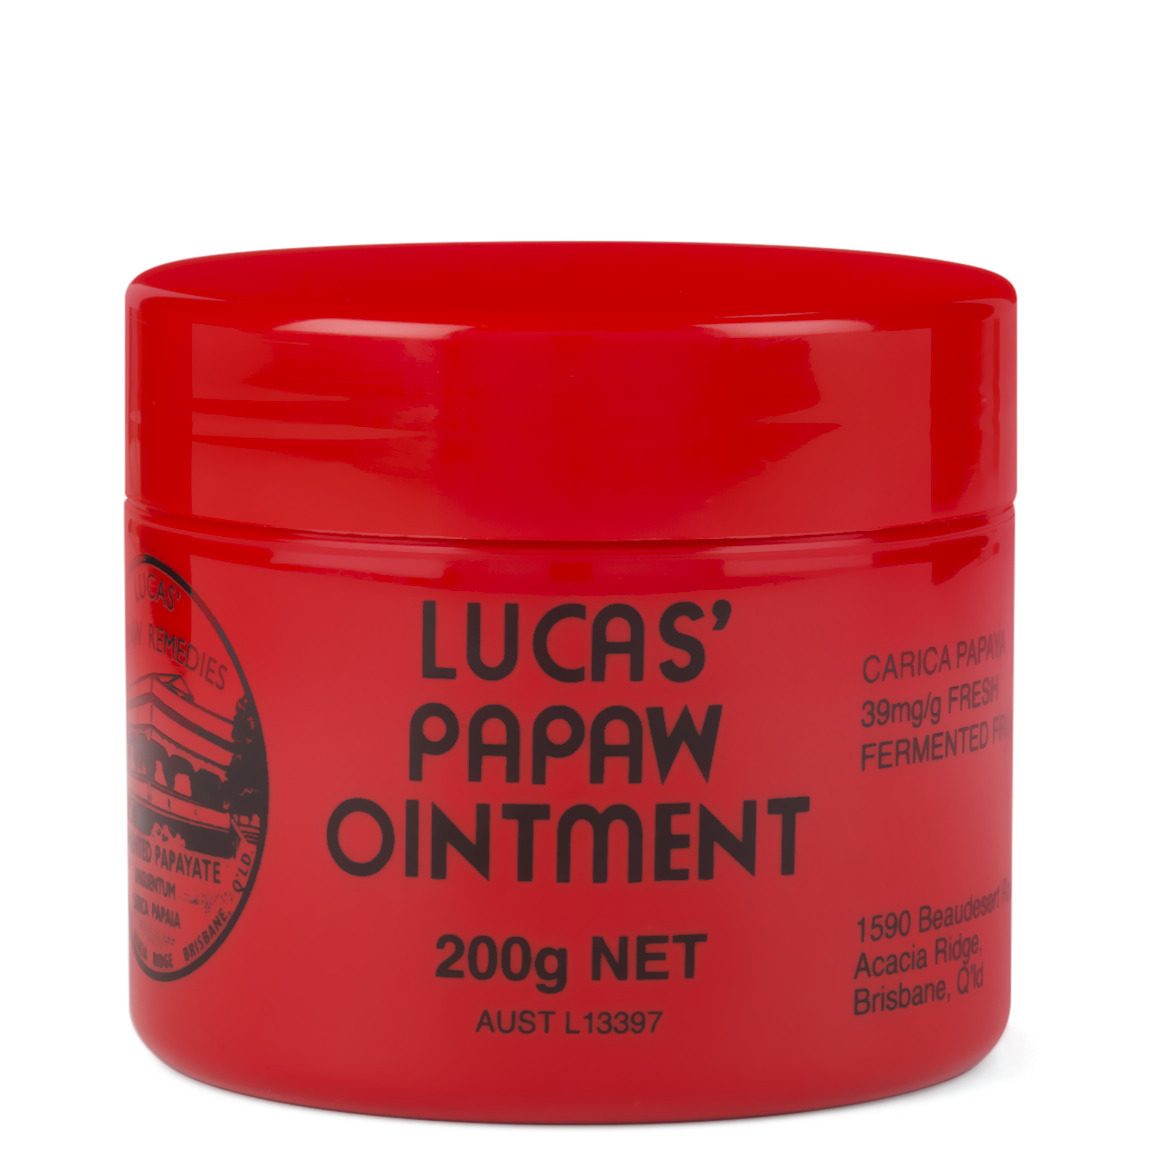 Lucas' Papaw Remedies Lucas' Papaw Ointment 200g Jar product smear.